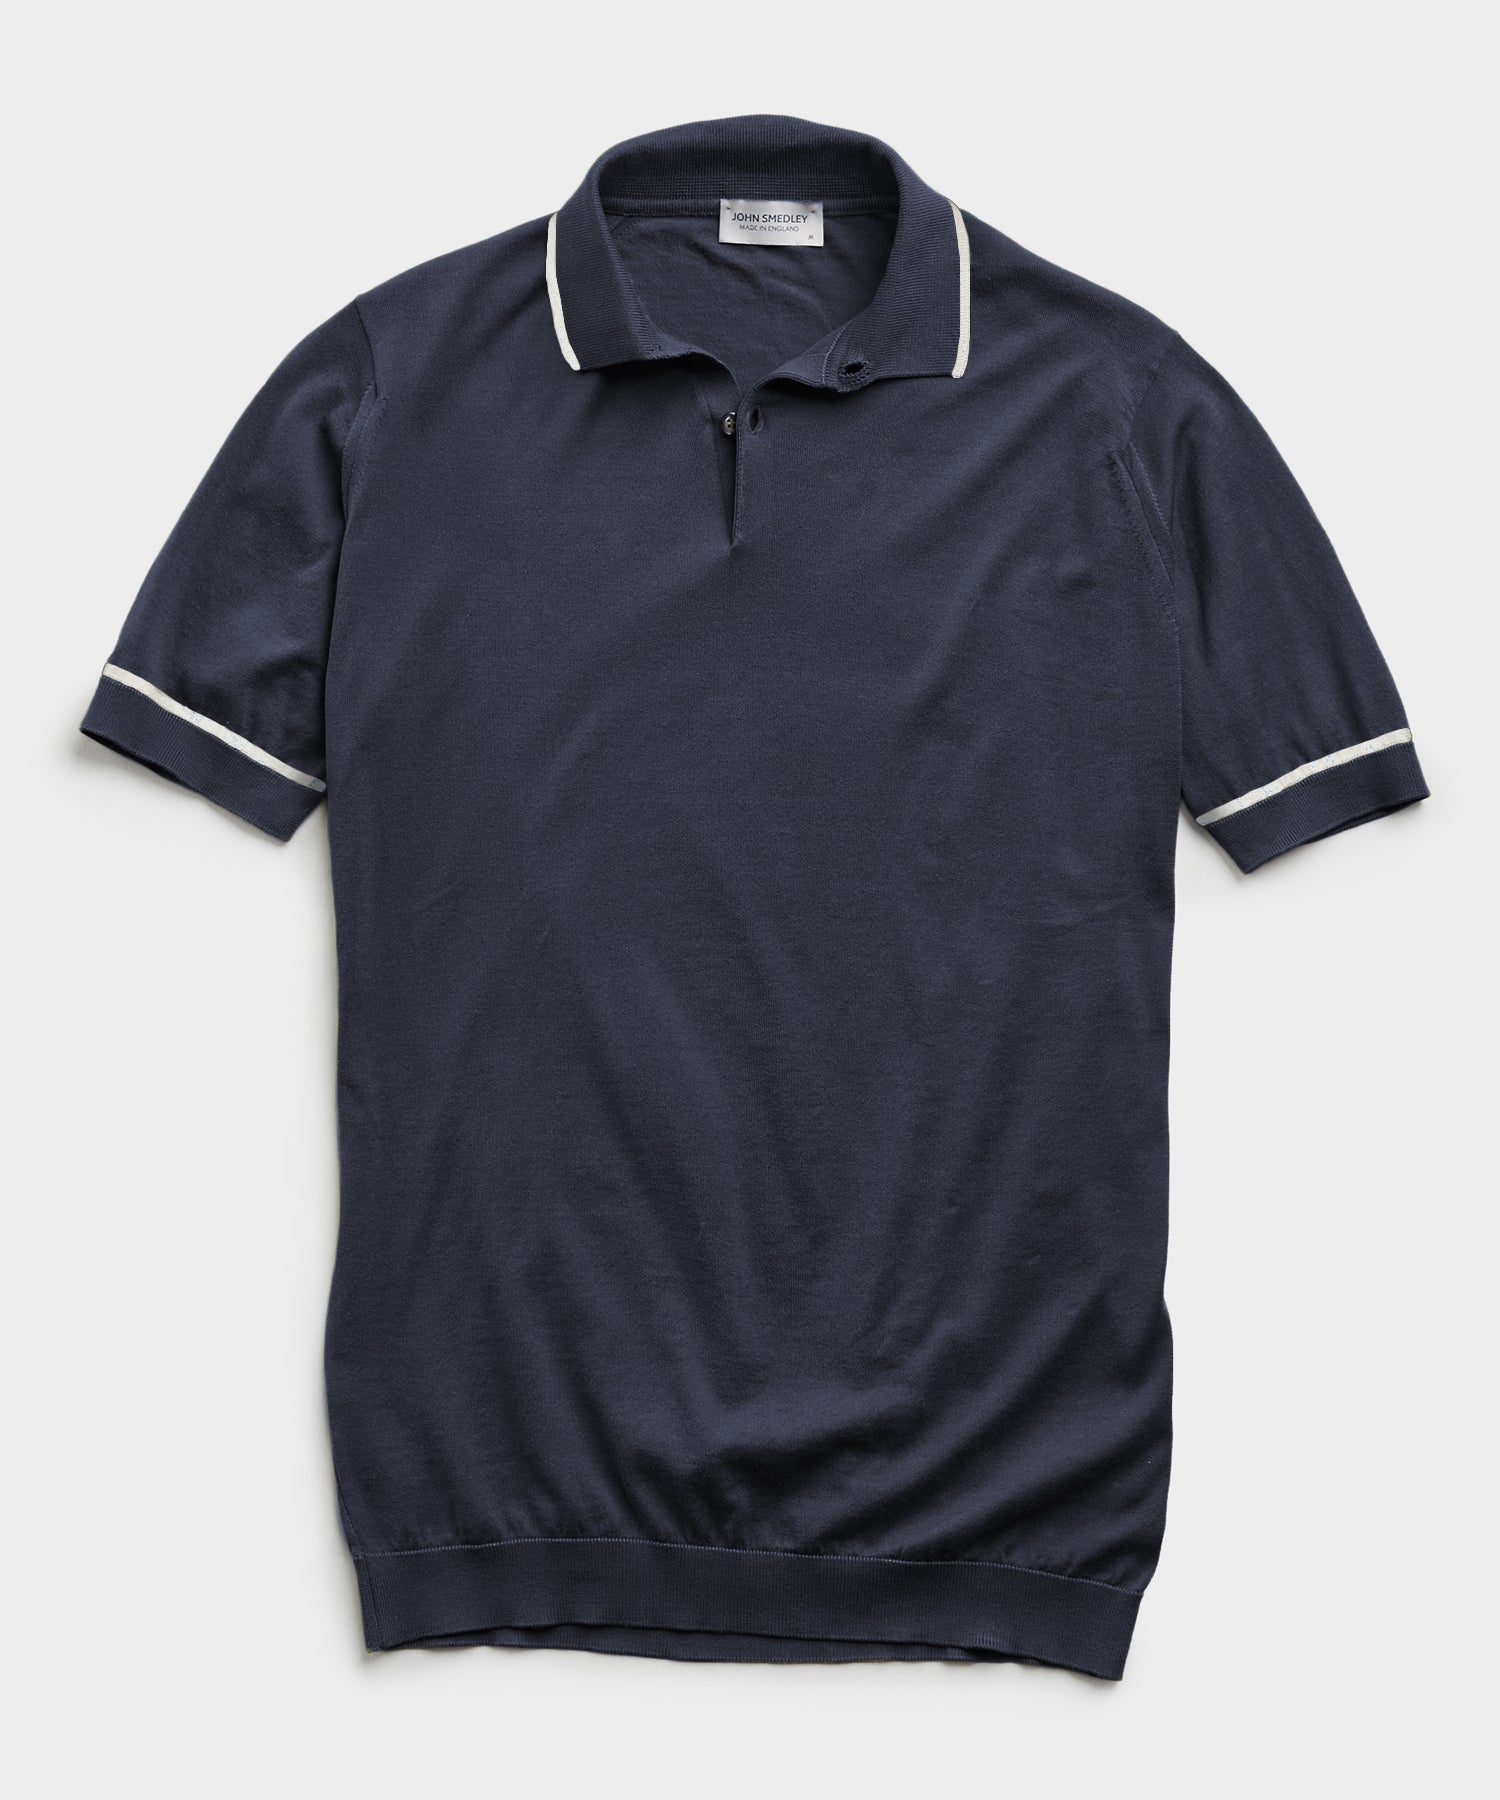 John Smedleys Sea Island Cotton Tipped Polo in Navy